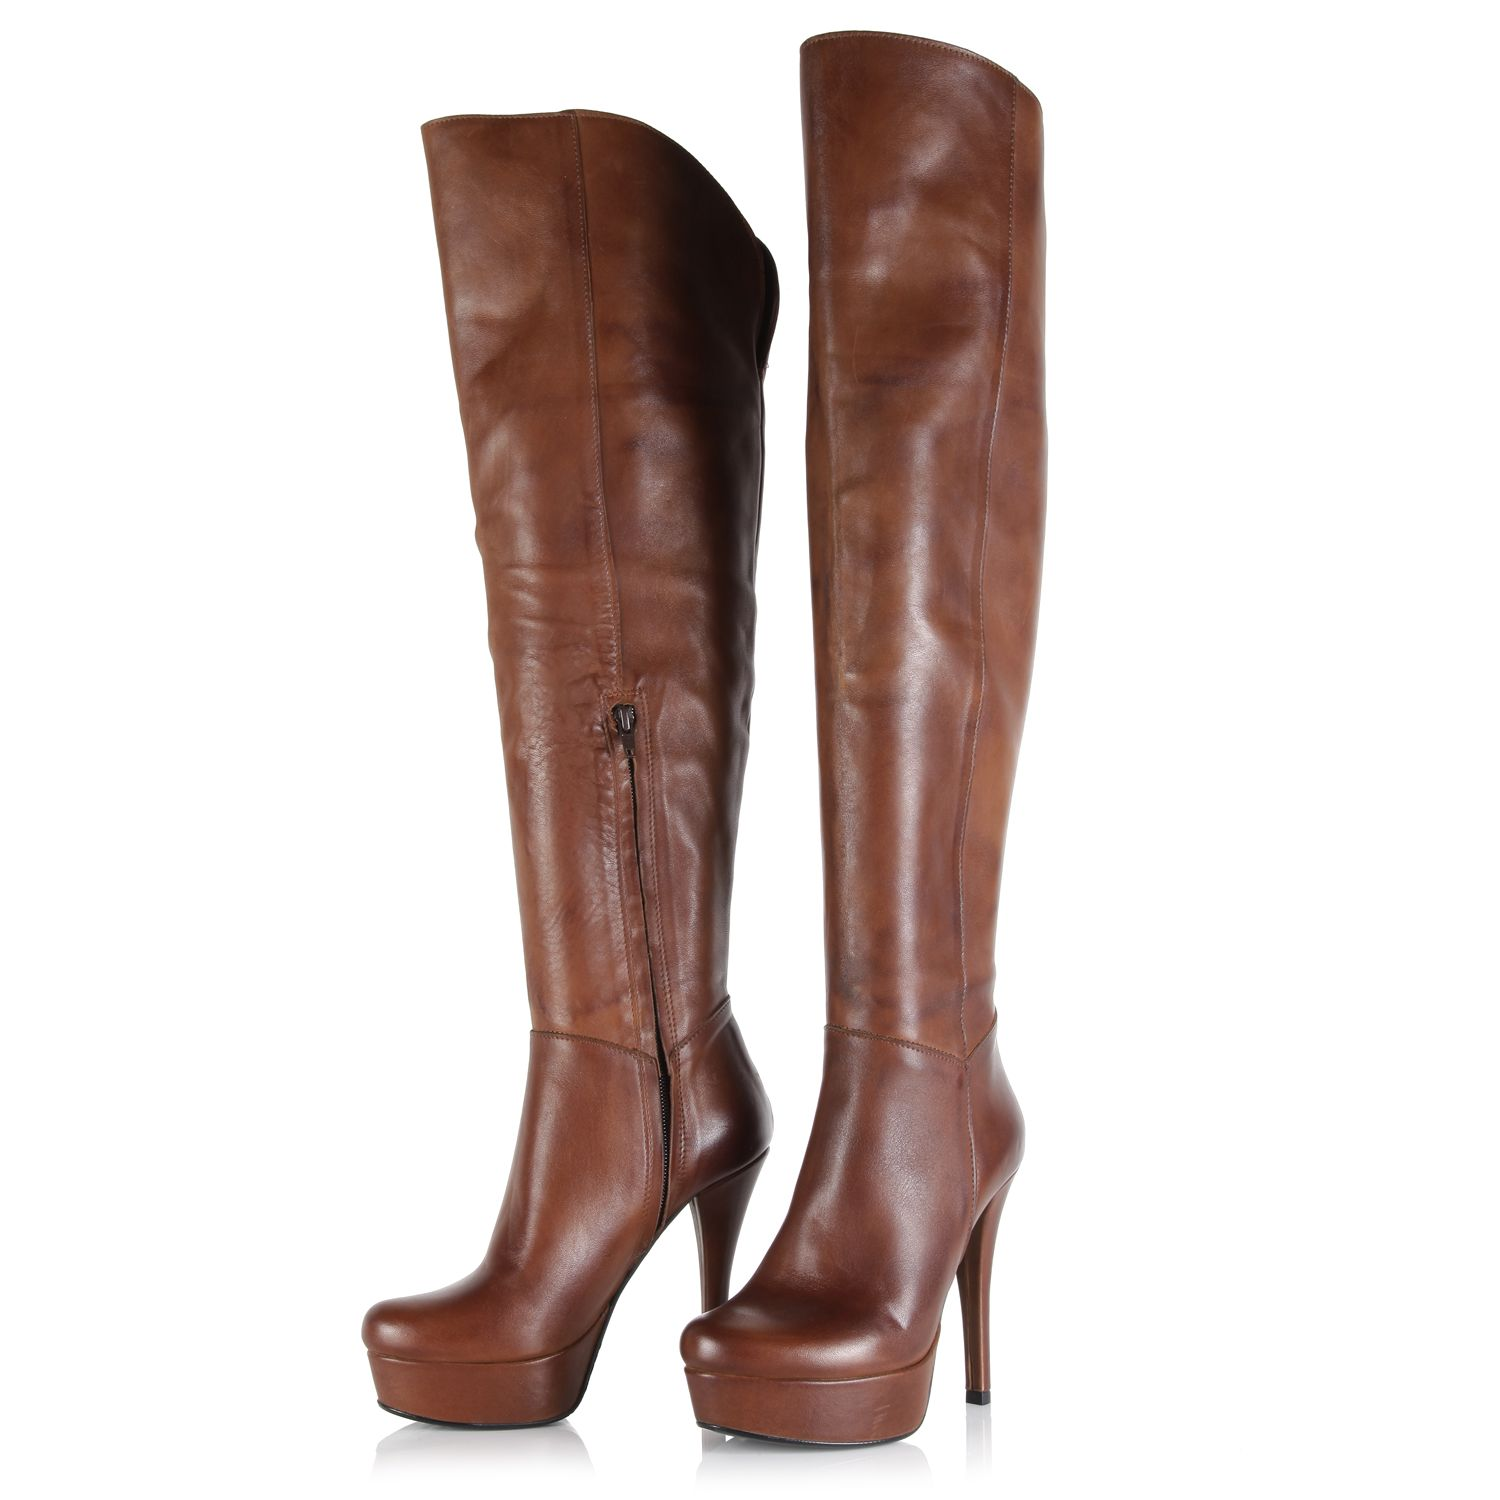 stranded heeled boot 199 951 Moda In Pelles Tips For 2012   2013 Autumn/Winter! How To Wear Boots In Style This Season!